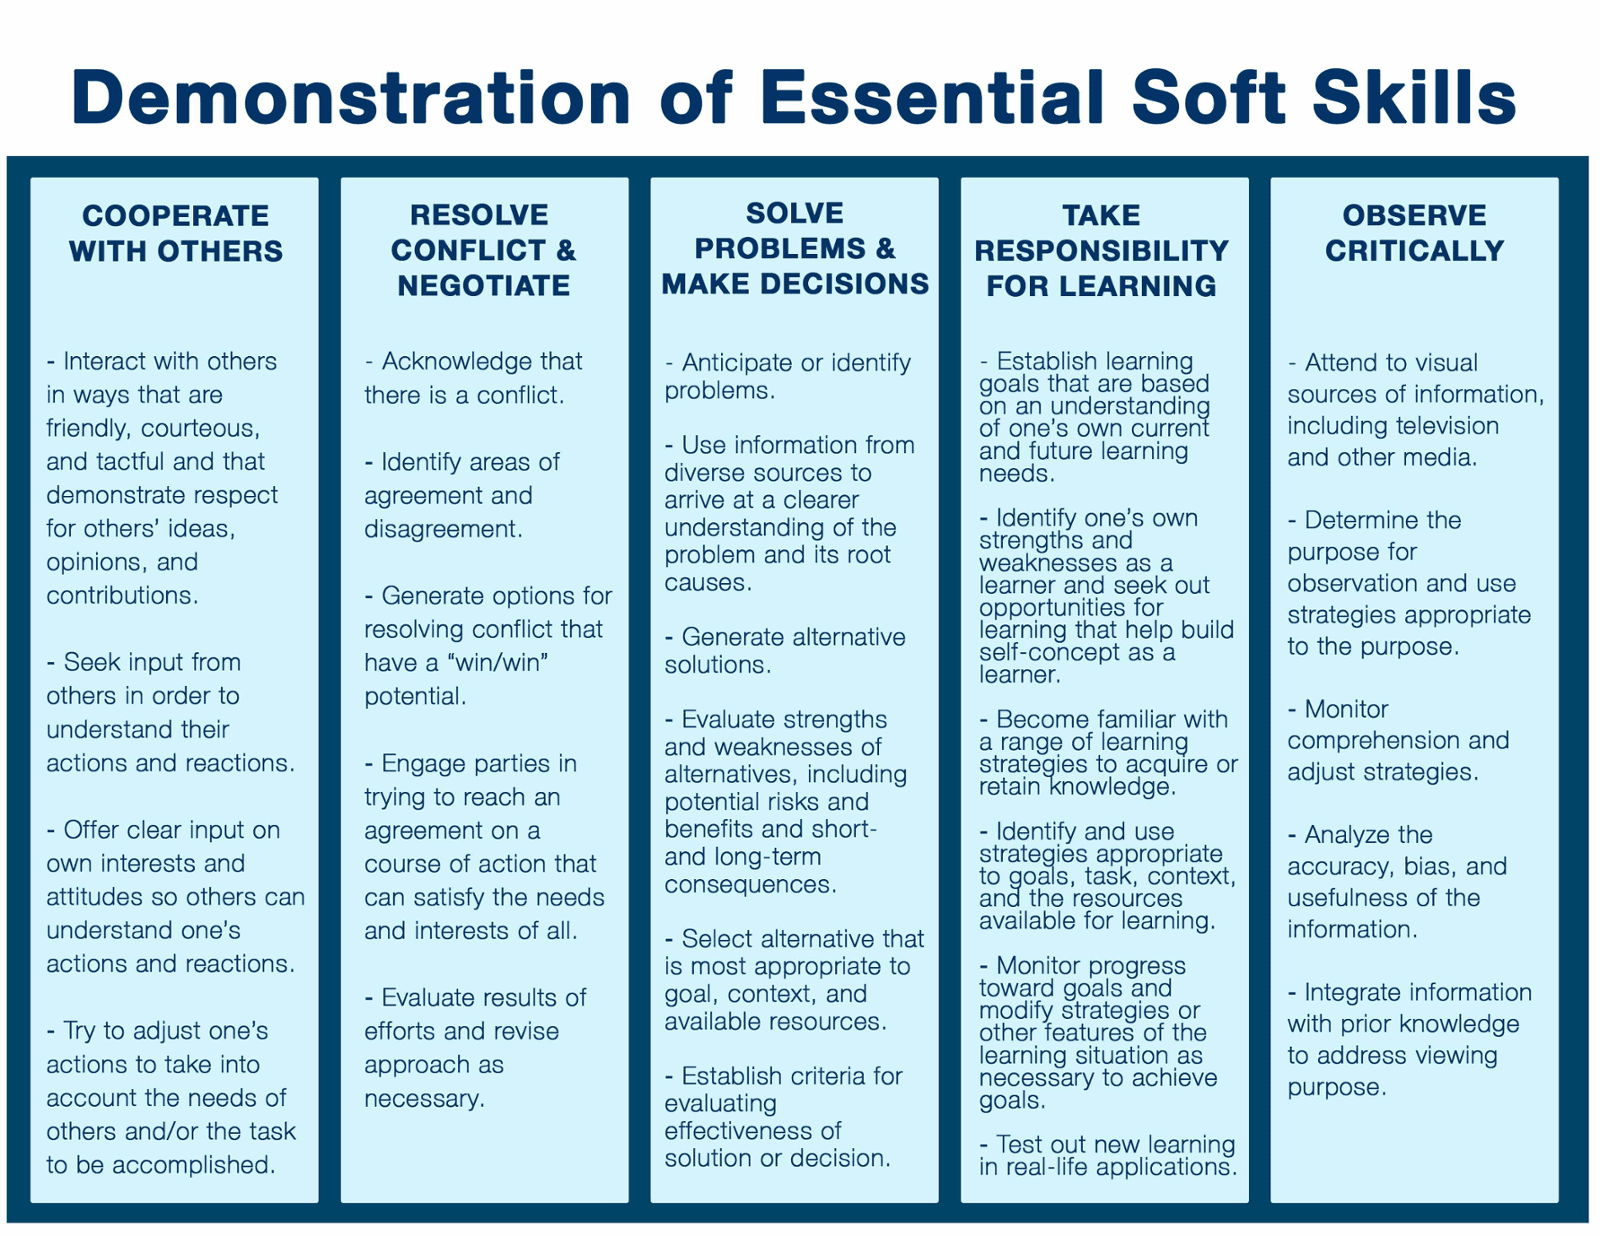 Demonstration of Essential Soft Skills